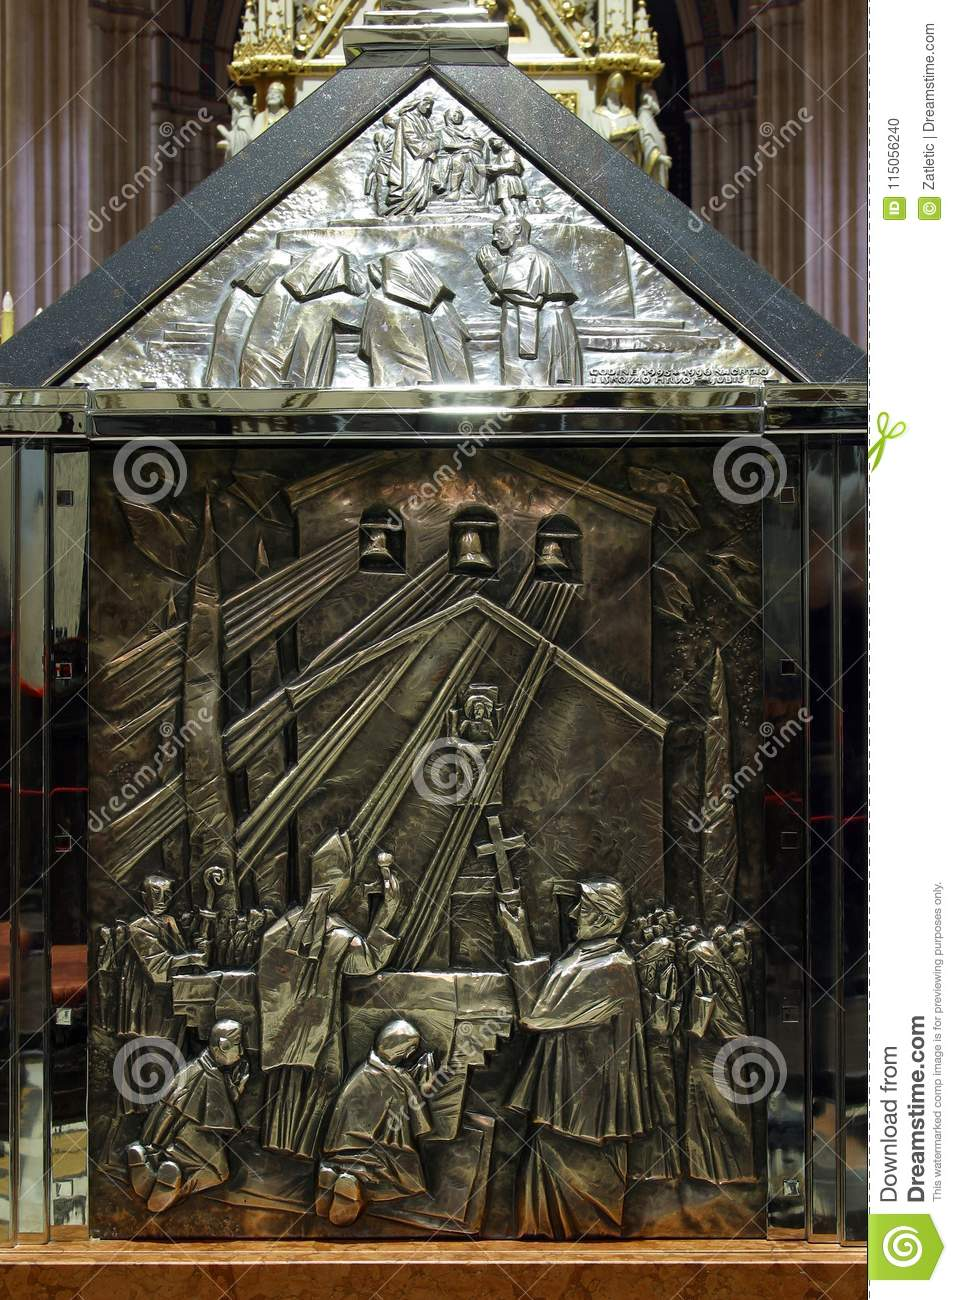 The Sarcophagus Of Blessed Aloysius Stepinac In Zagreb Cathedral Stock Photo Image Of Catholic Faith 115056240